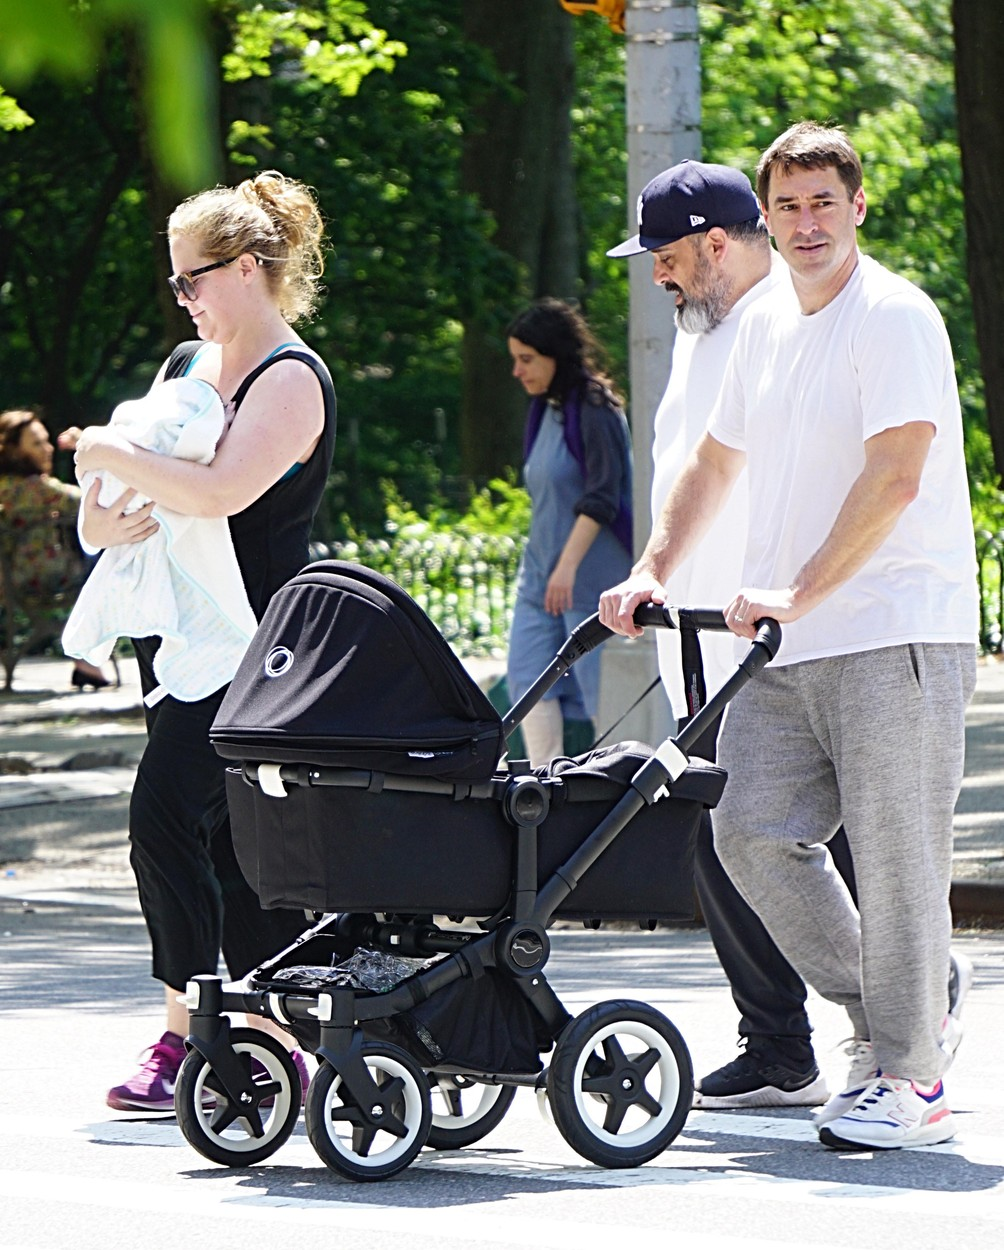 , New York, NY - 20190519 -  Amy Schumer and Chris Fischer out With Son Gene Attell Fischer on the Upper West Side  -PICTURED: Amy Schumer, Chris Fischer,Gene Attell Fischer -, Image: 434575716, License: Rights-managed, Restrictions: , Model Release: no, Credit line: Ken Katz / INSTAR Images / Profimedia